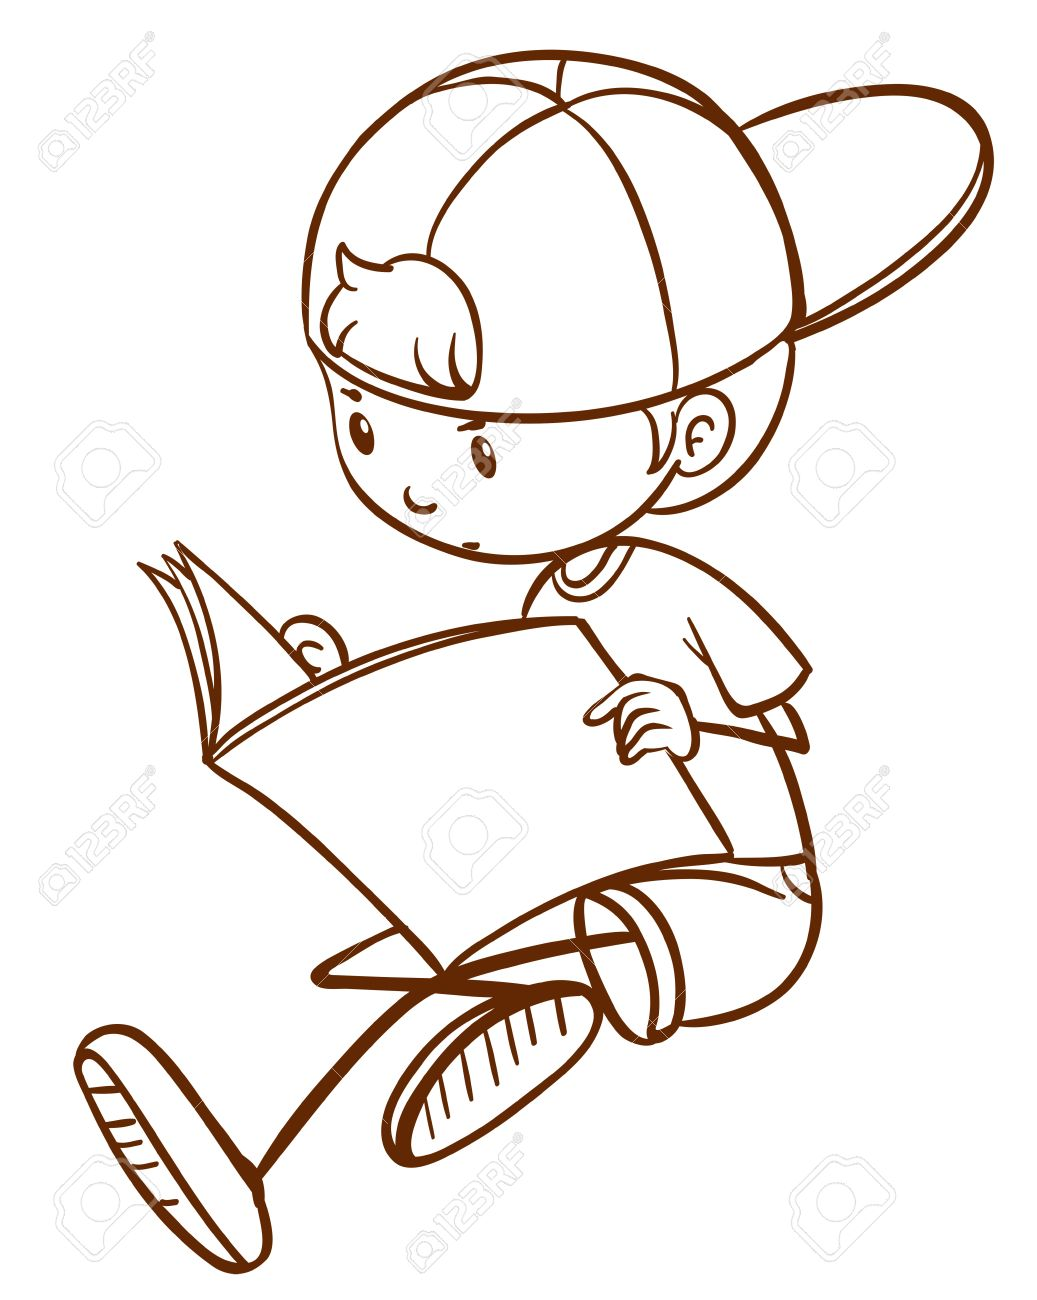 1037x1300 A Plain Drawing Of A Young Boy Reading On A White Background